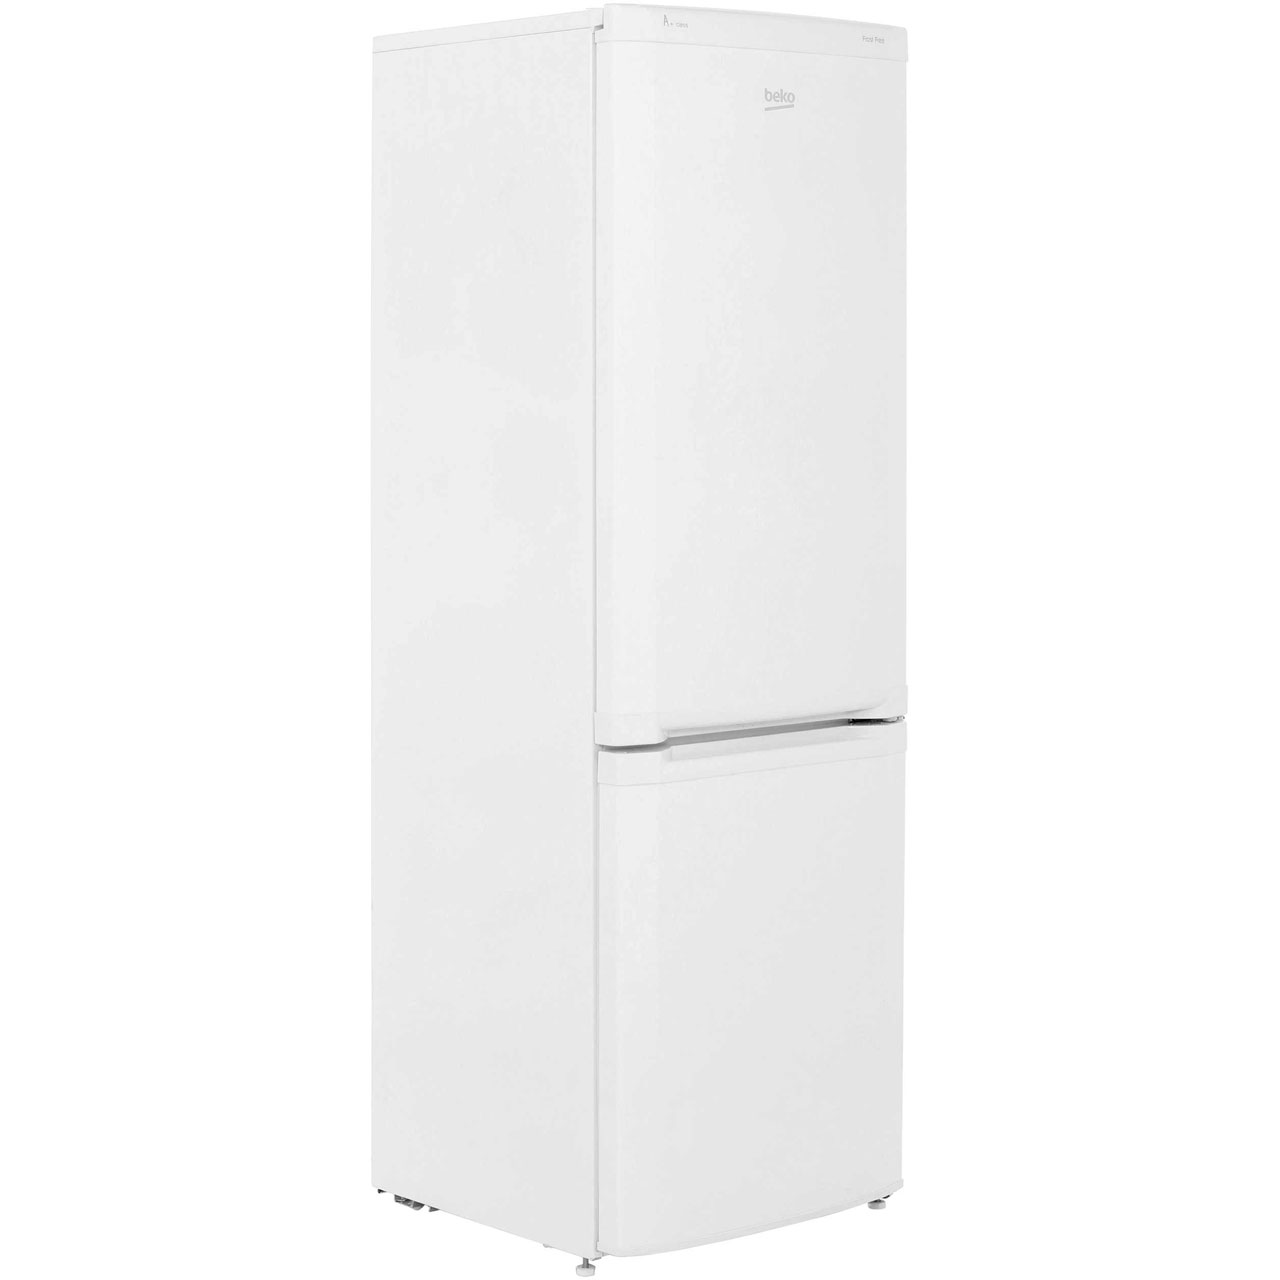 Beko CF5713APW Free Standing Fridge Freezer Frost Free in White